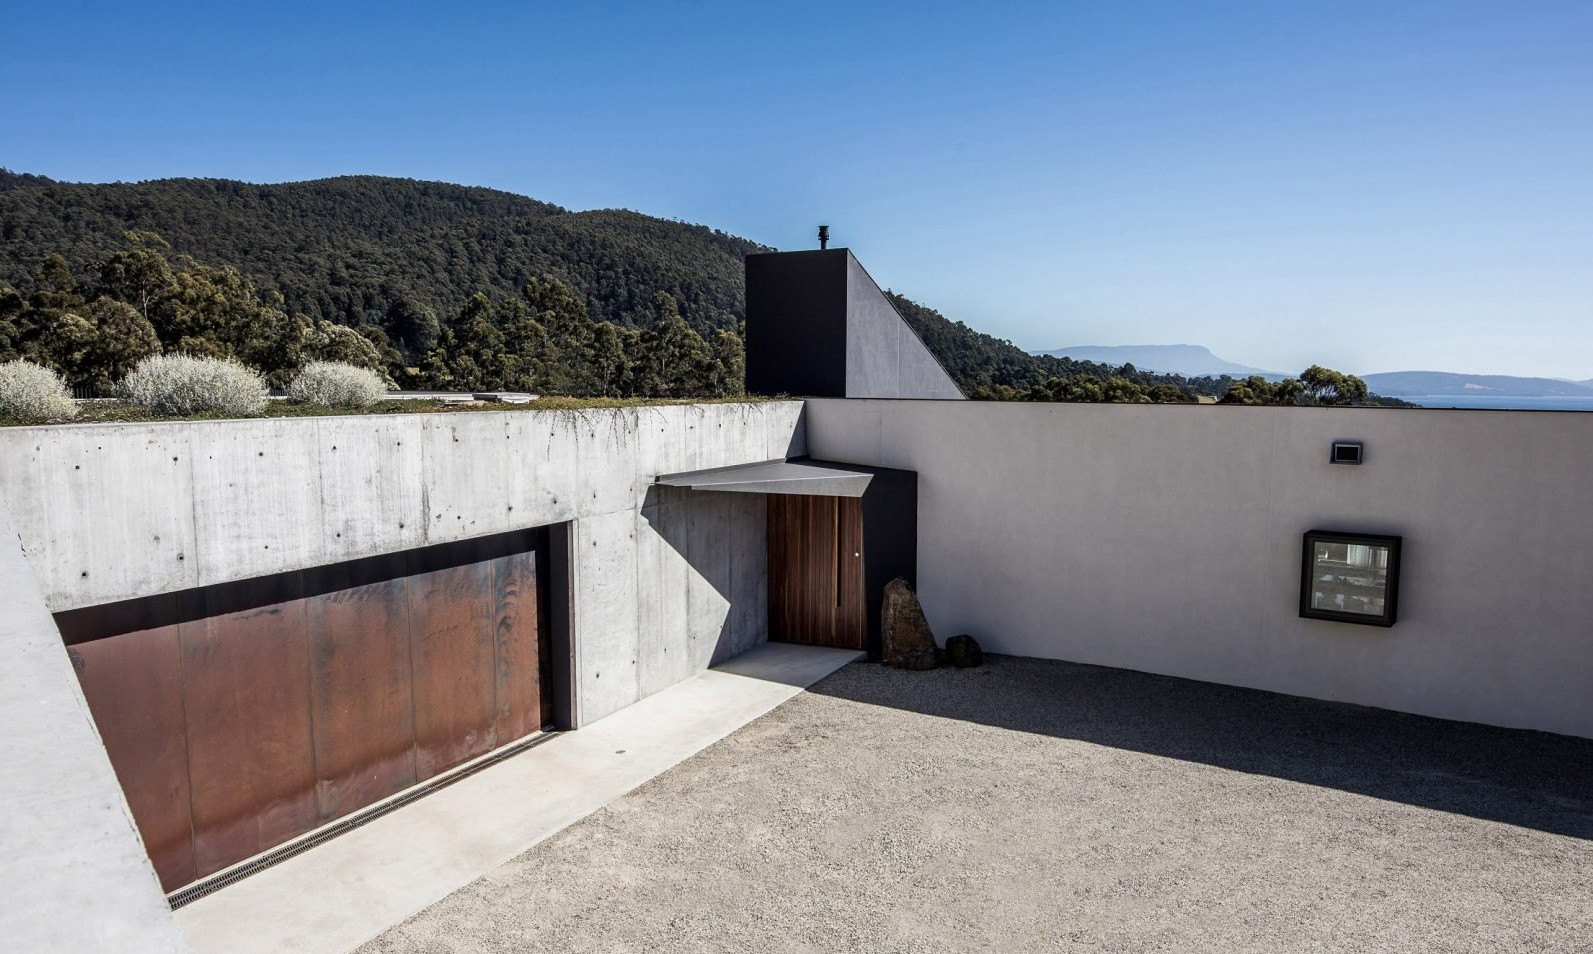 sunnybanks-house-by-core-collective-architects_dezeen_2364_col_0-1704x956